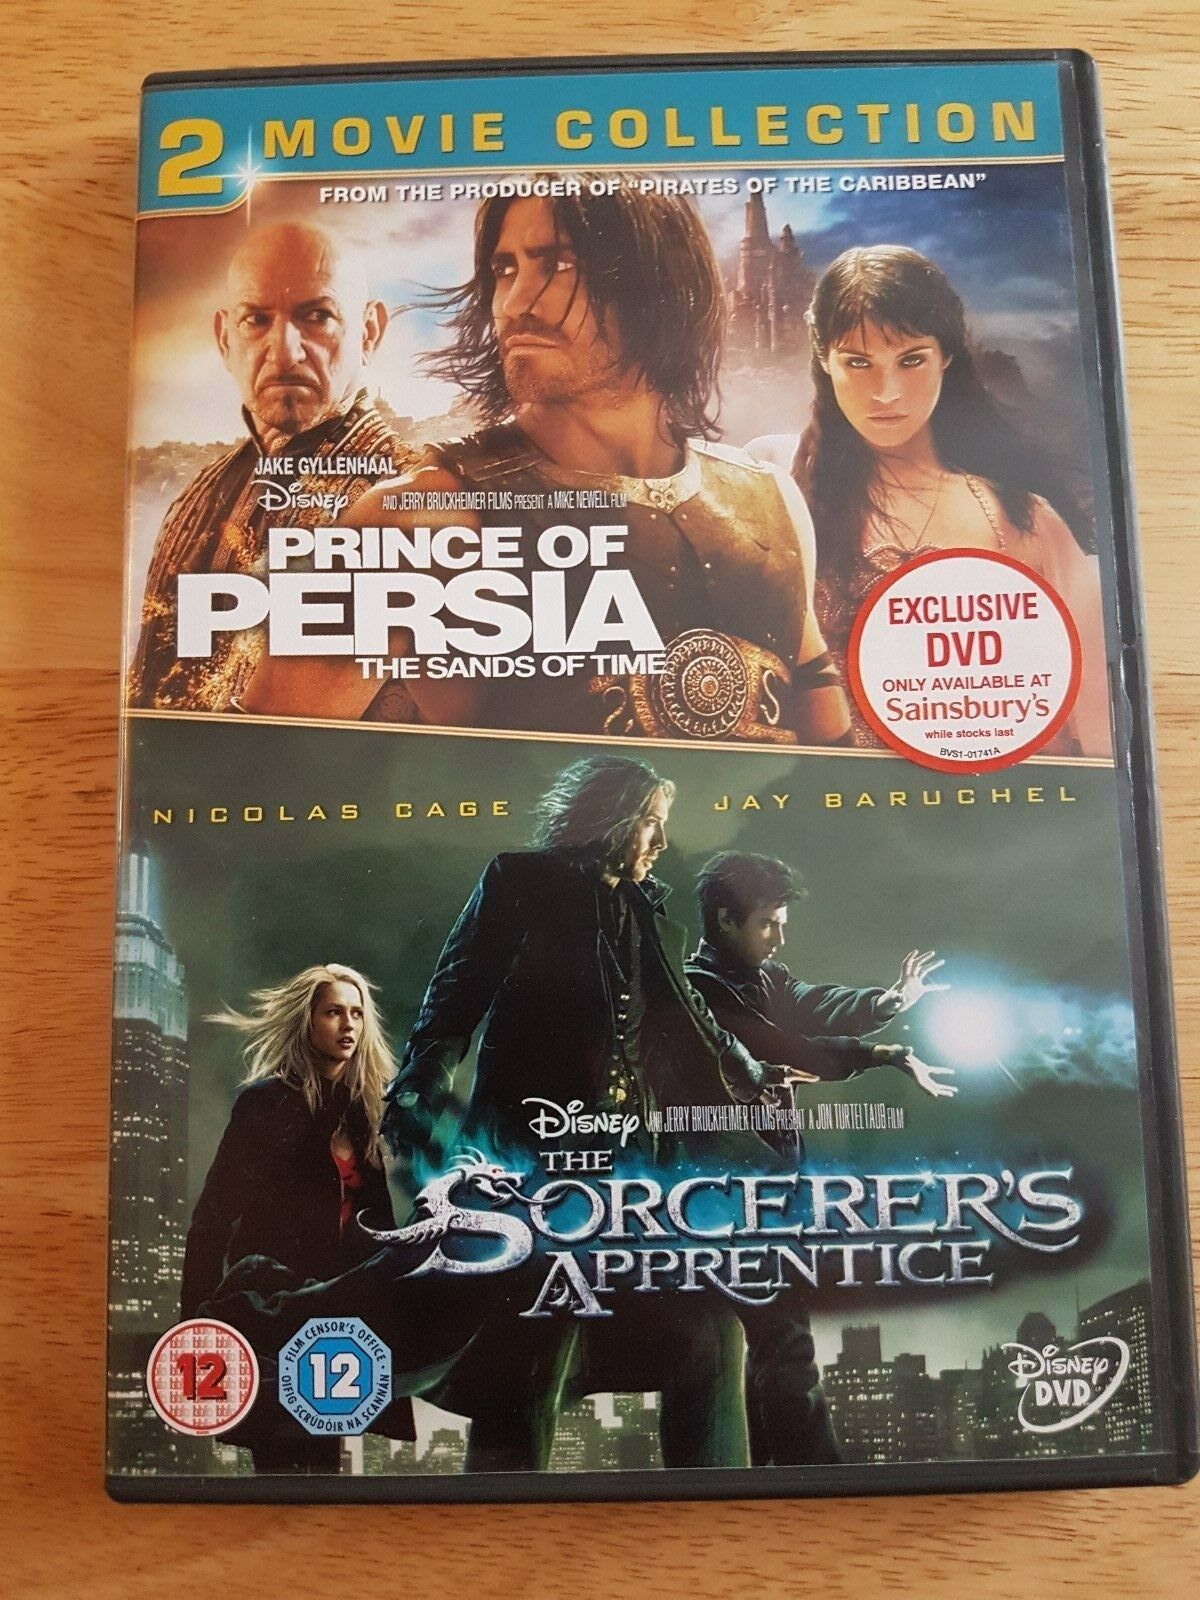 Ref 62 Disneys Prince Of Persia The Sands Of Time Sorcerer S Apprentice Dvd For Sale